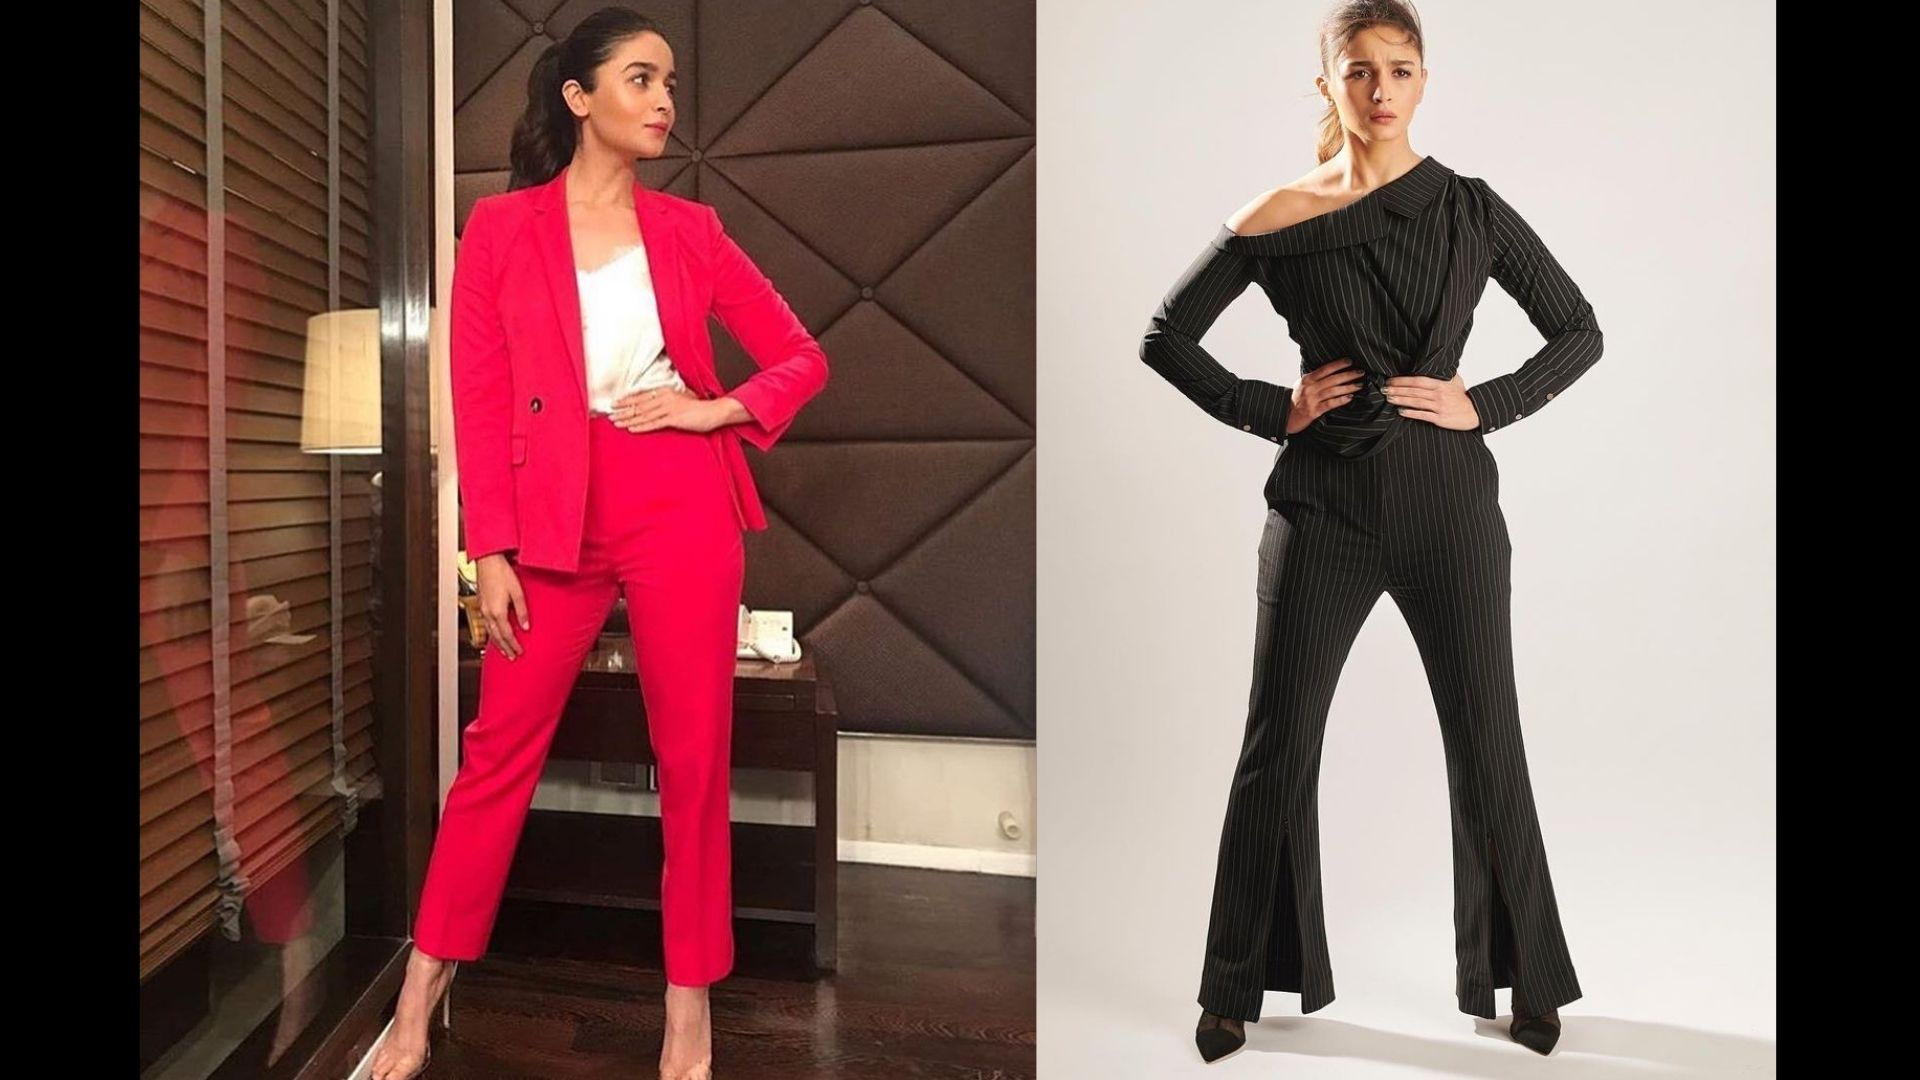 Alia Bhatt's Pant Suit Collection Is All About Formal Dressing With Style; Take Cues